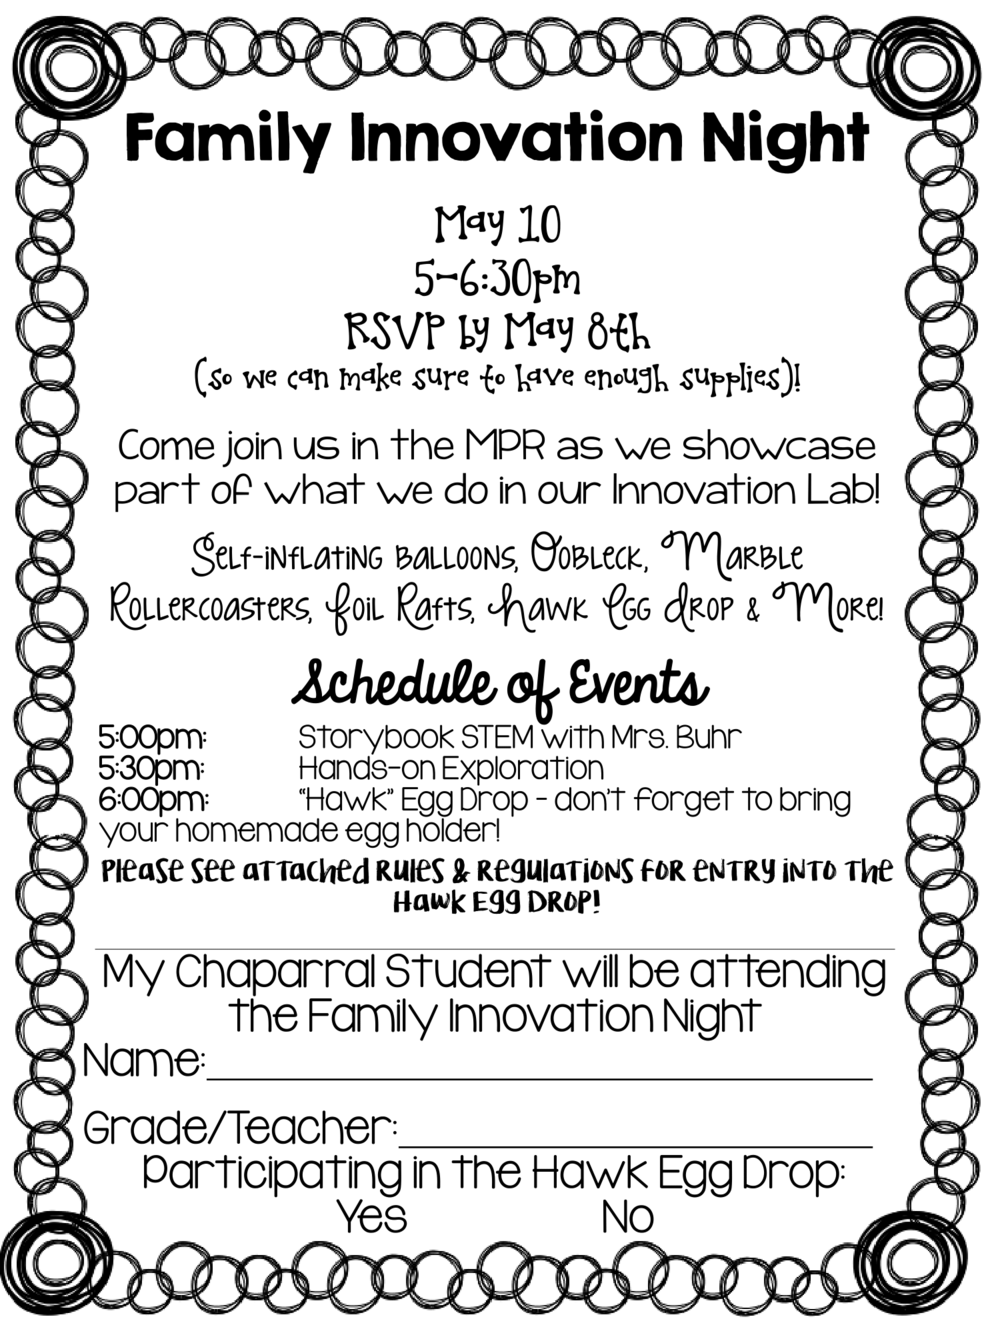 Innovation Family Night Flyer-1.png